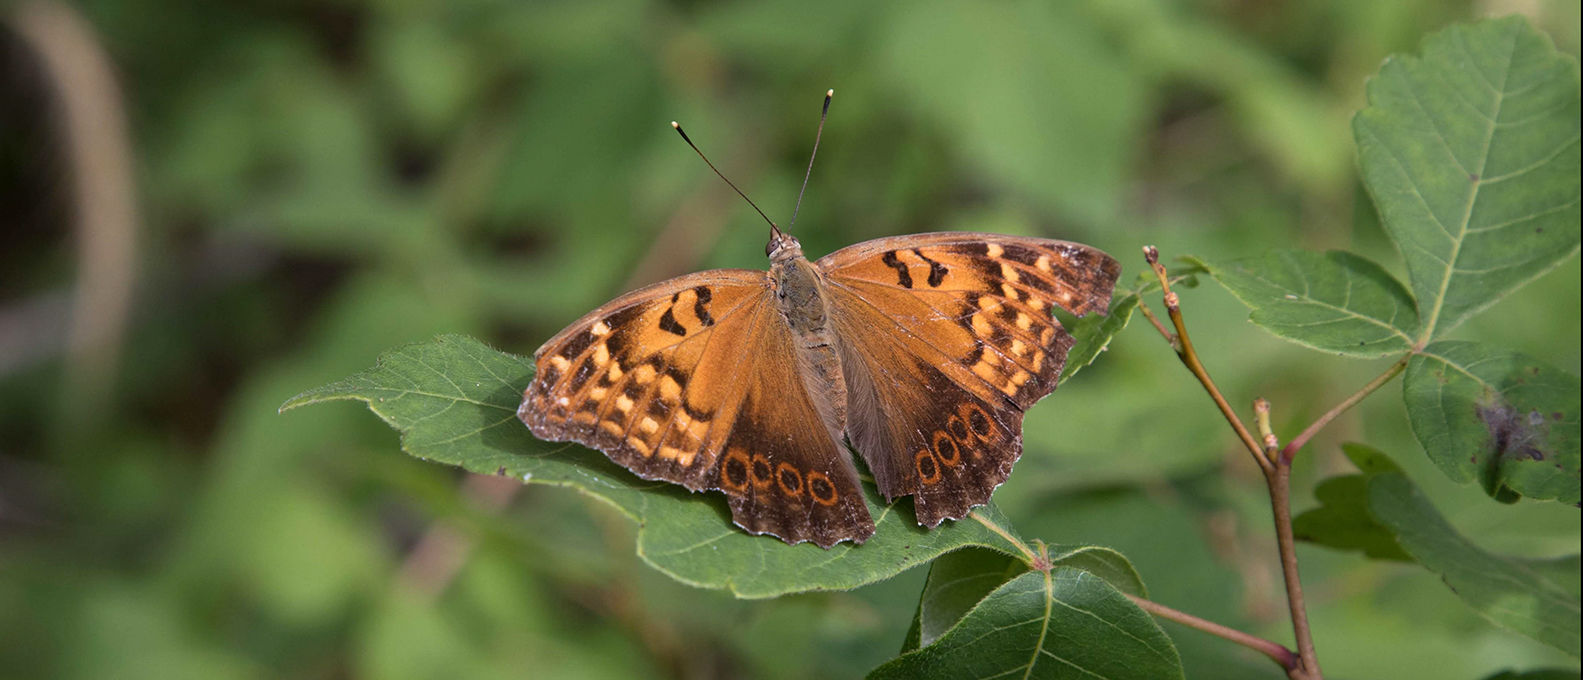 Tawny emperor butterfly, Stone Road Alvar Nature Reserve